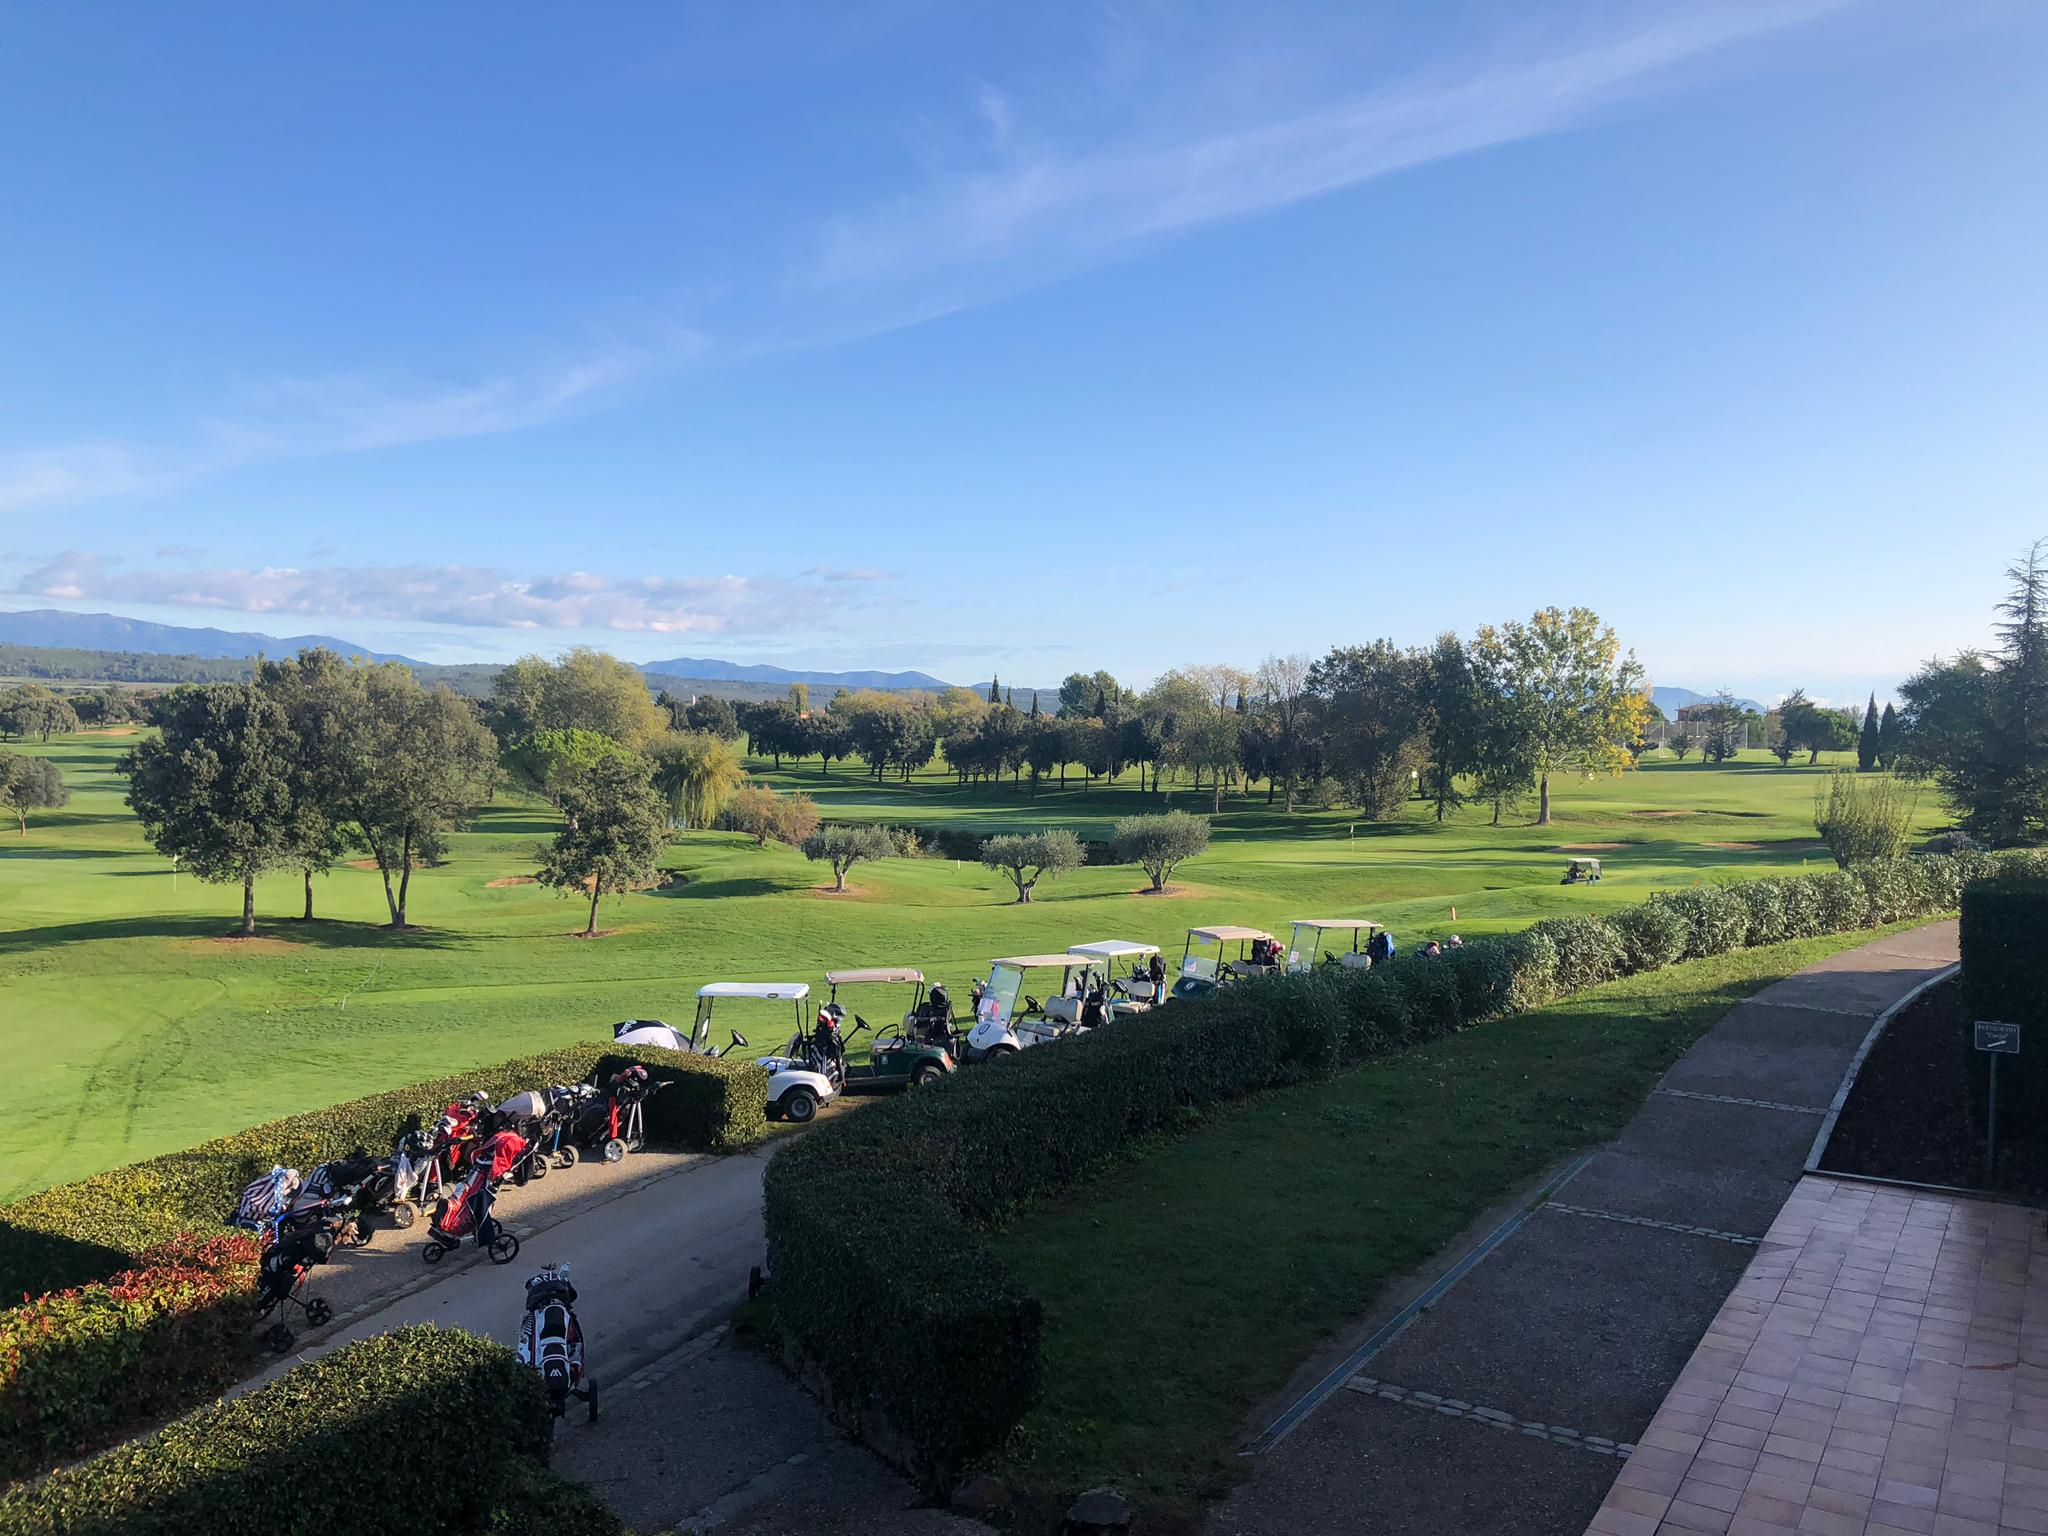 WhatsApp-Image-2019-11-08-at-10.25.42-1 Golfy Cup Catalogne 2019